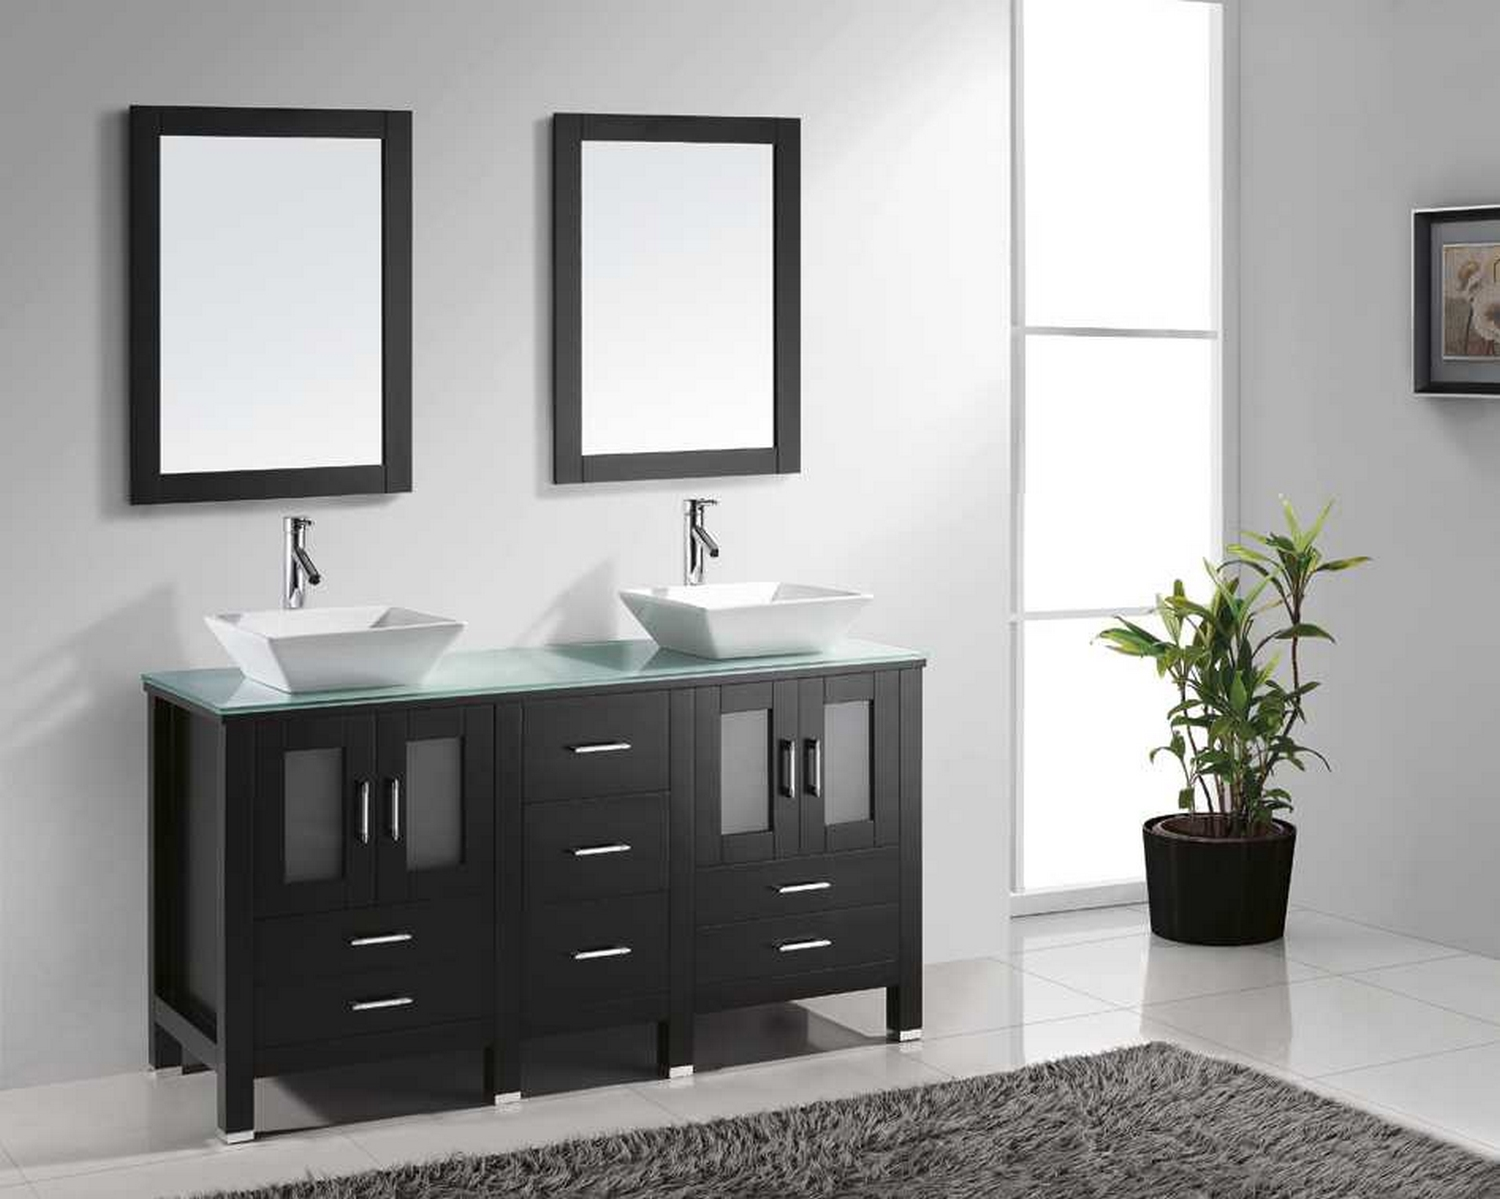 Virtu Usa Bradford 60 Double Bathroom Vanity Cabinet Set